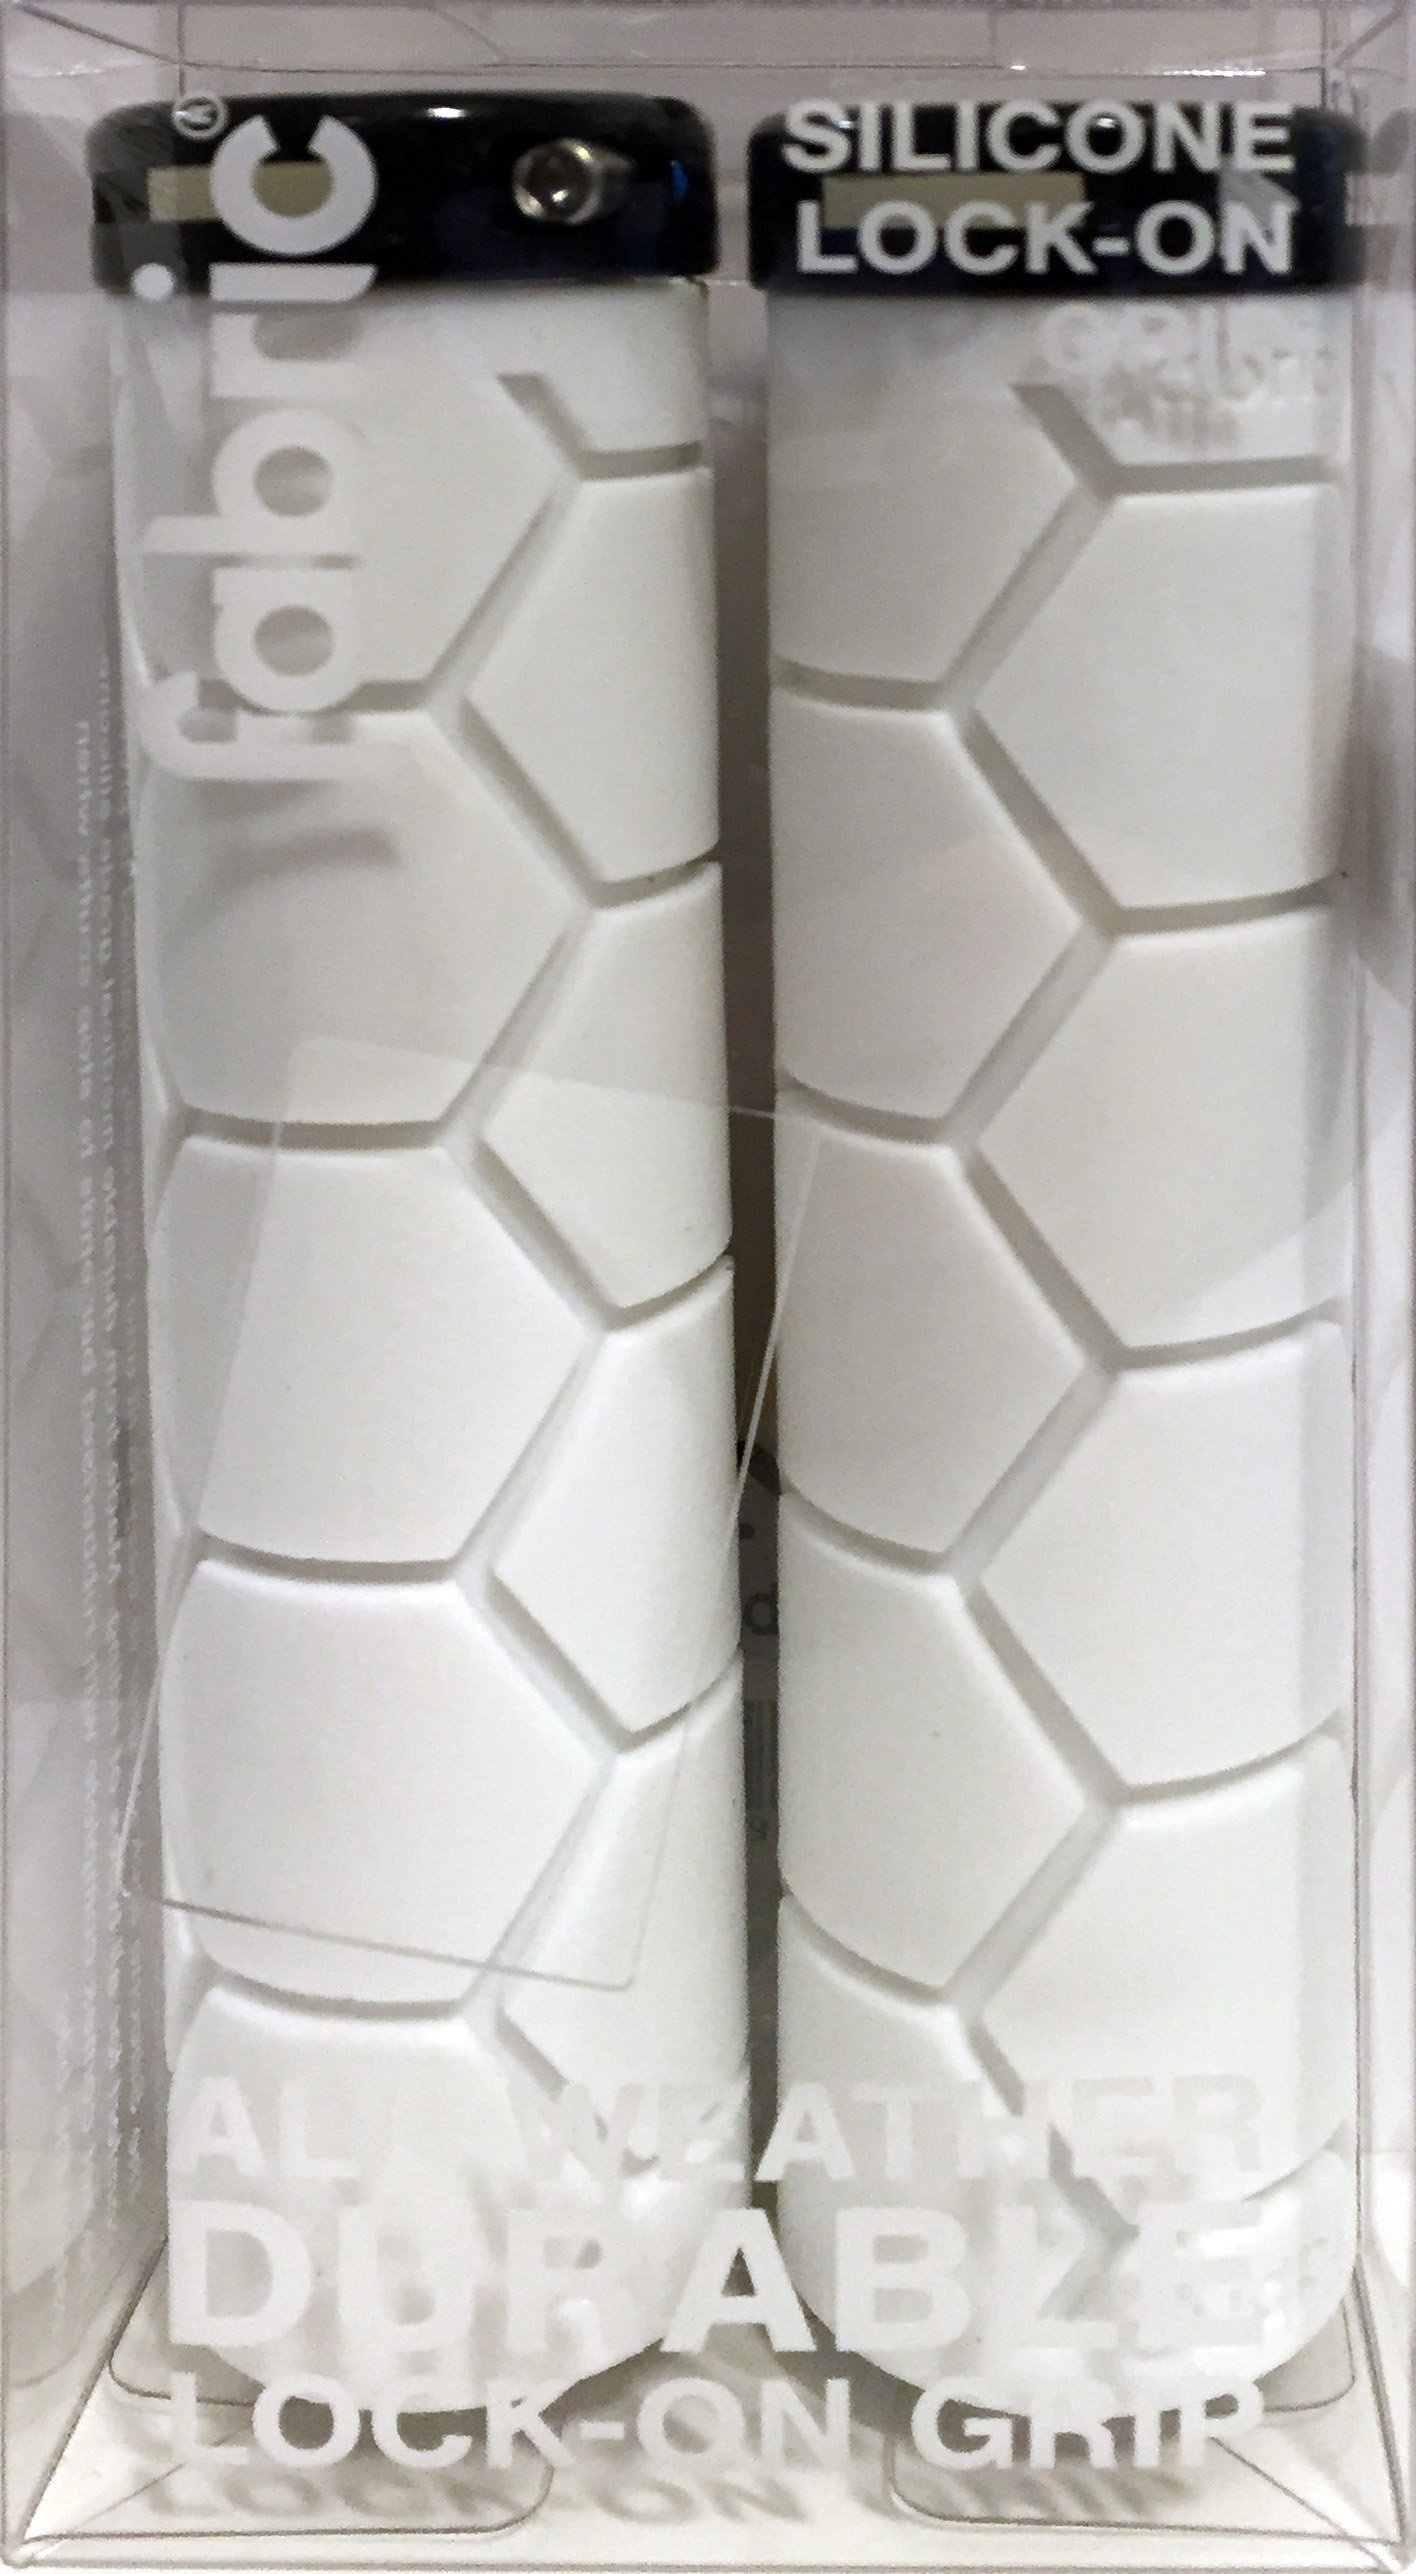 Fabric Silicone Lock-On Grip, WHITE